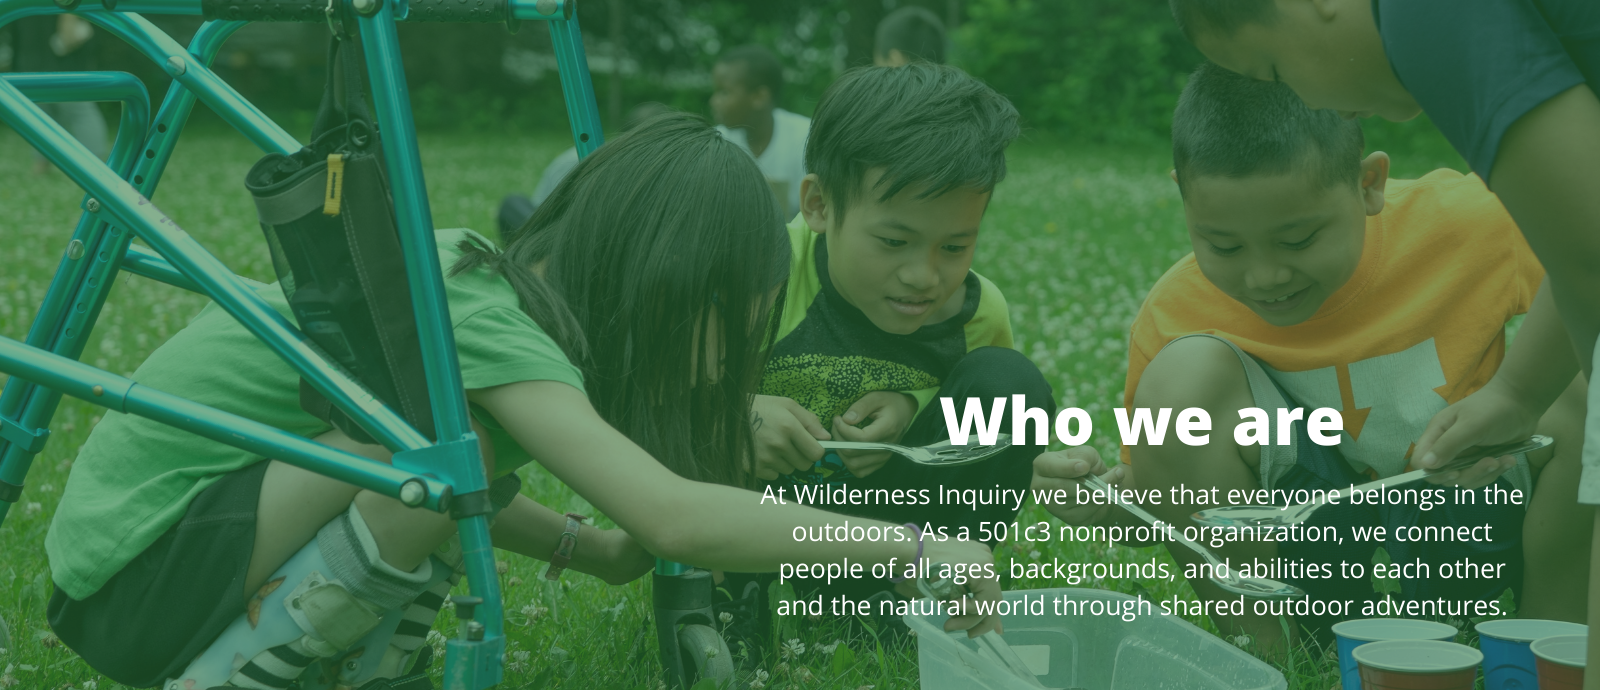 Who we are - at Wilderness Inquiry we believe everyone belongs in the outdoors. As a 501c3 nonprofit organization, we connect people of all ages, backgrounds, and abilities to each other and the natural world through shared outdoor adventures.